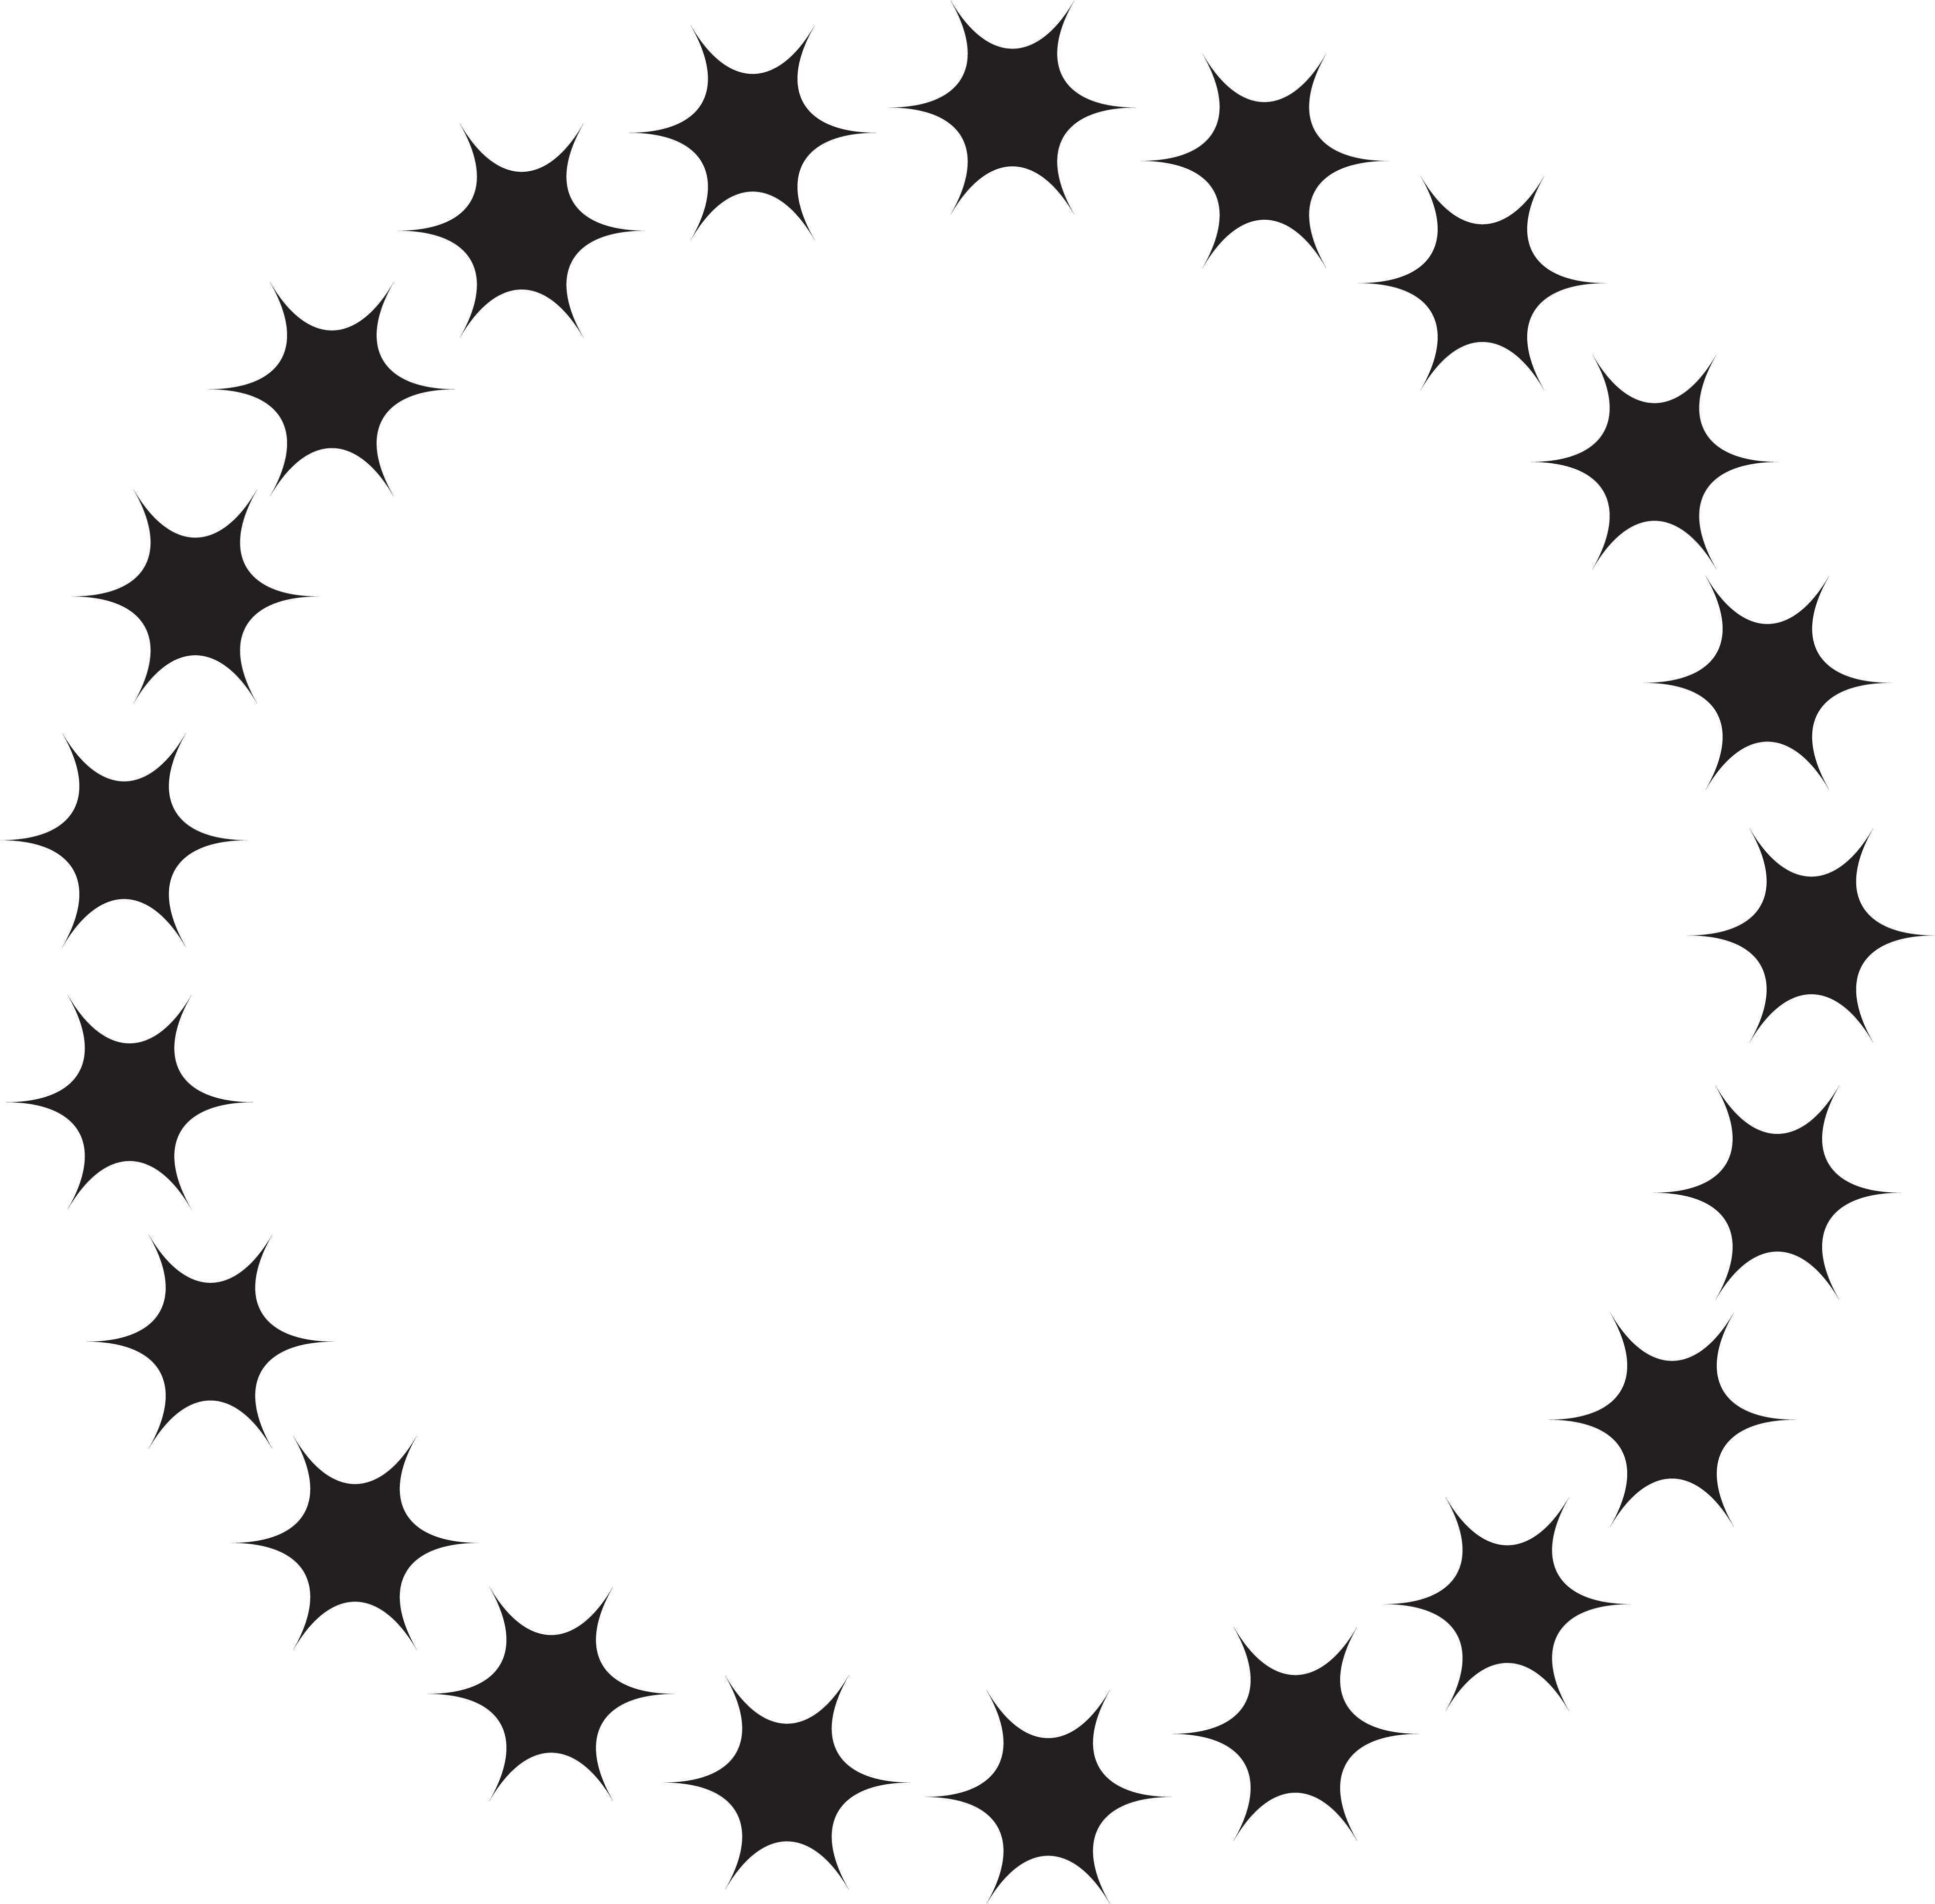 Circlw star clipart vector black and white download HD Jpg Black And White Download Circle Of Stars Clipart - Circle ... vector black and white download